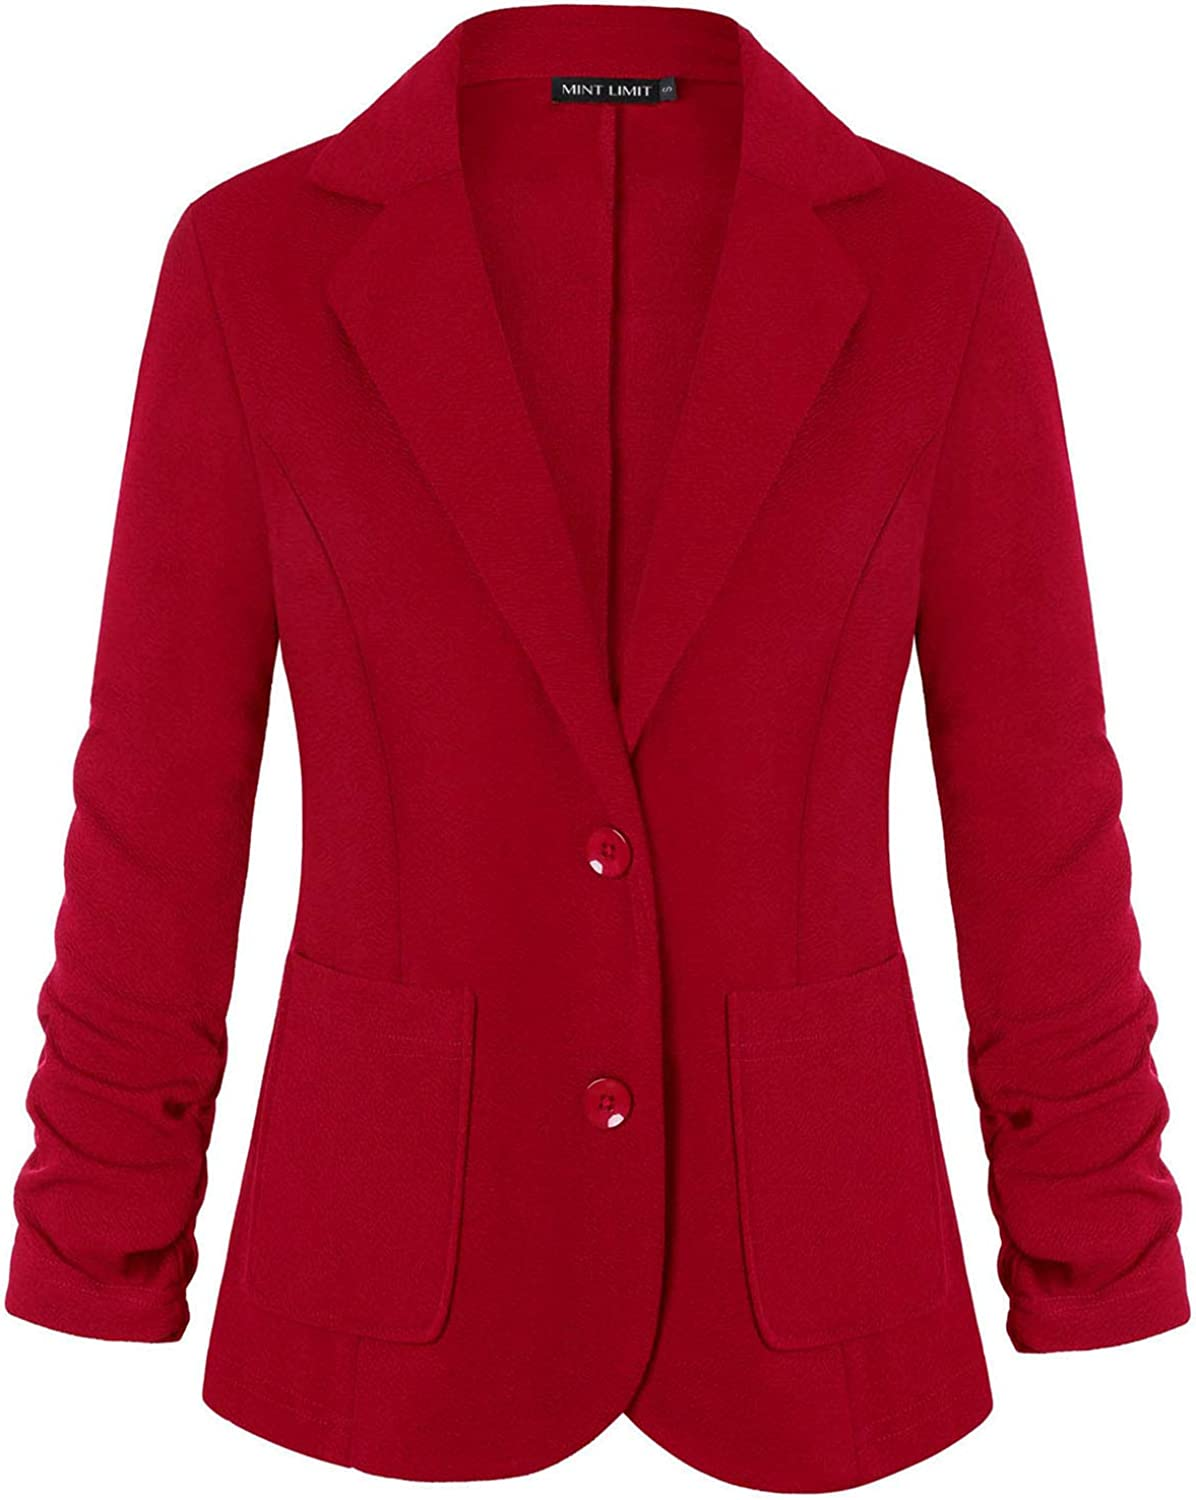 Women's Blazers Ruched 3/4 Sleeve Button Notched Lapel Work Office Blazer Jacket Suit Pockets